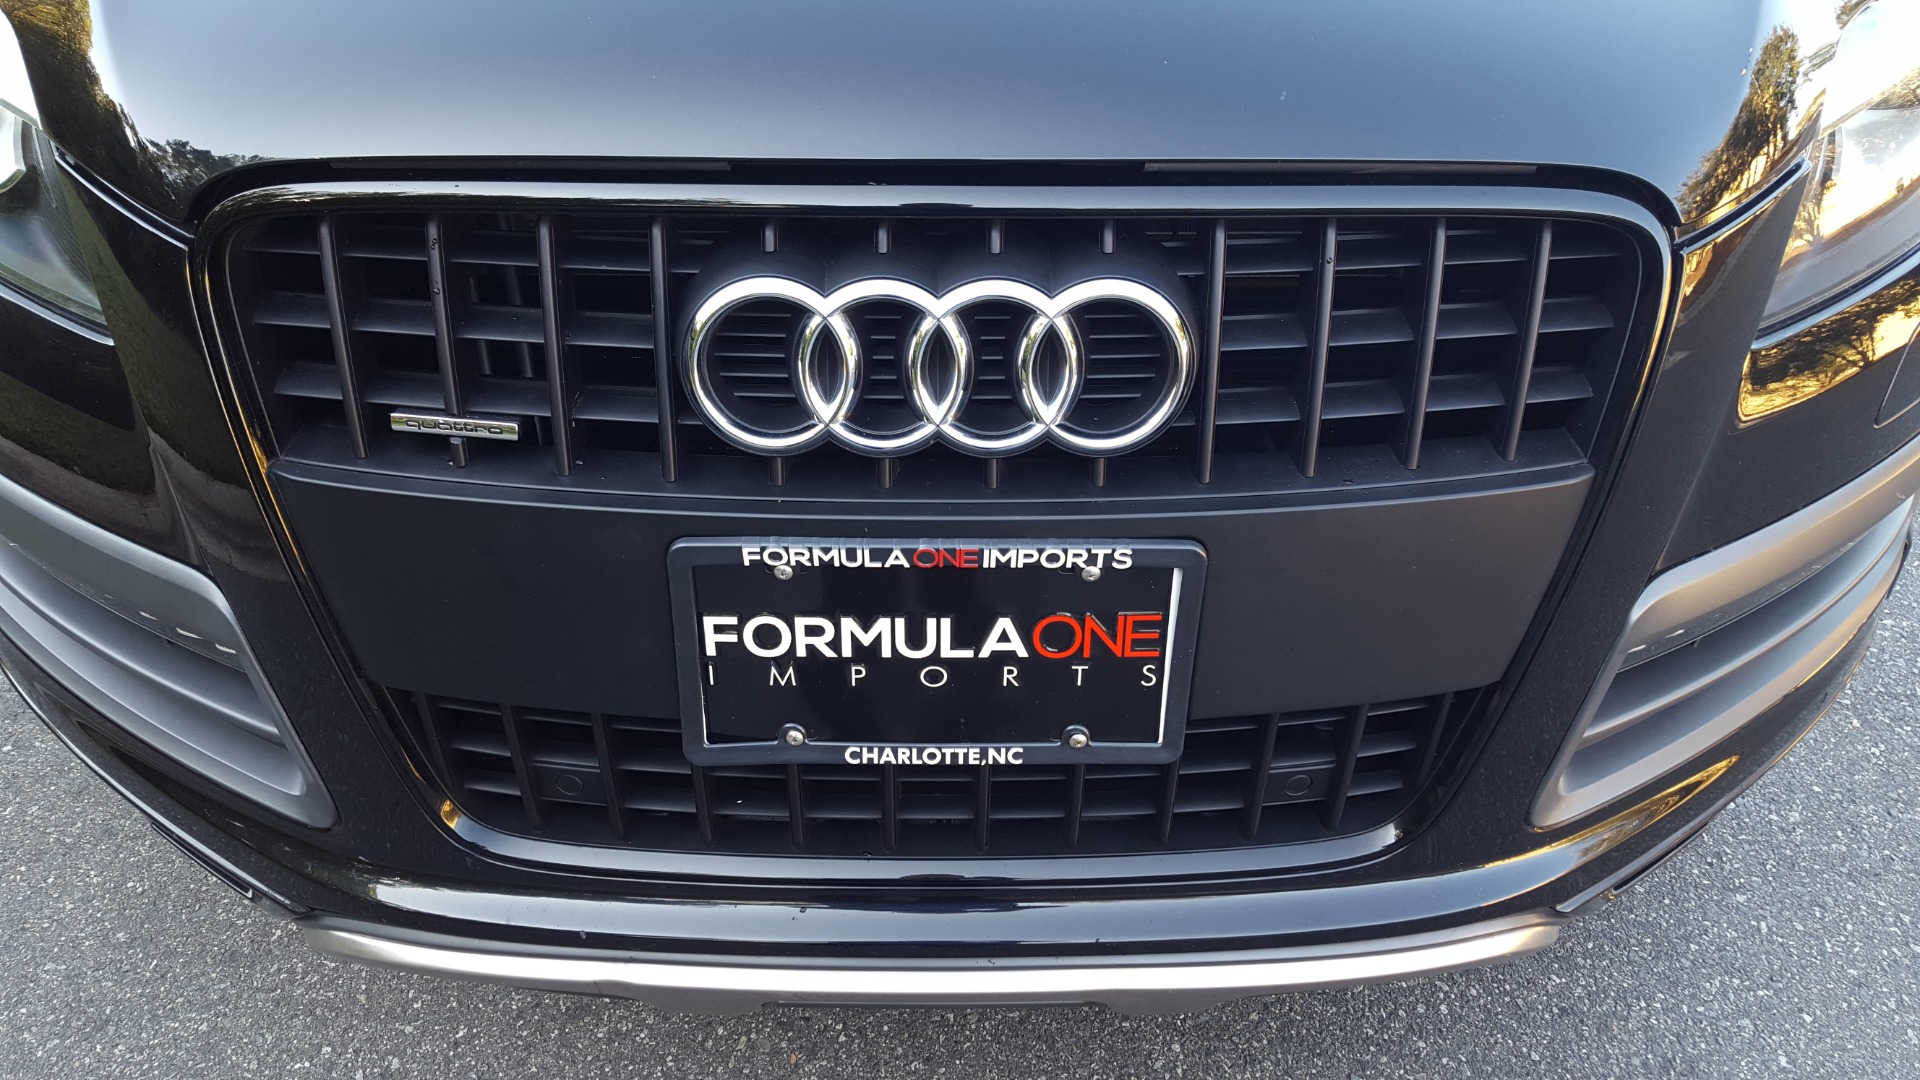 Used 2015 Audi Q7 3.0T PREMIUM PLUS TIPTRONIC / NAV / OFFROAD PLUS / WARM WEATHER / COLD WEAT for sale Sold at Formula Imports in Charlotte NC 28227 19